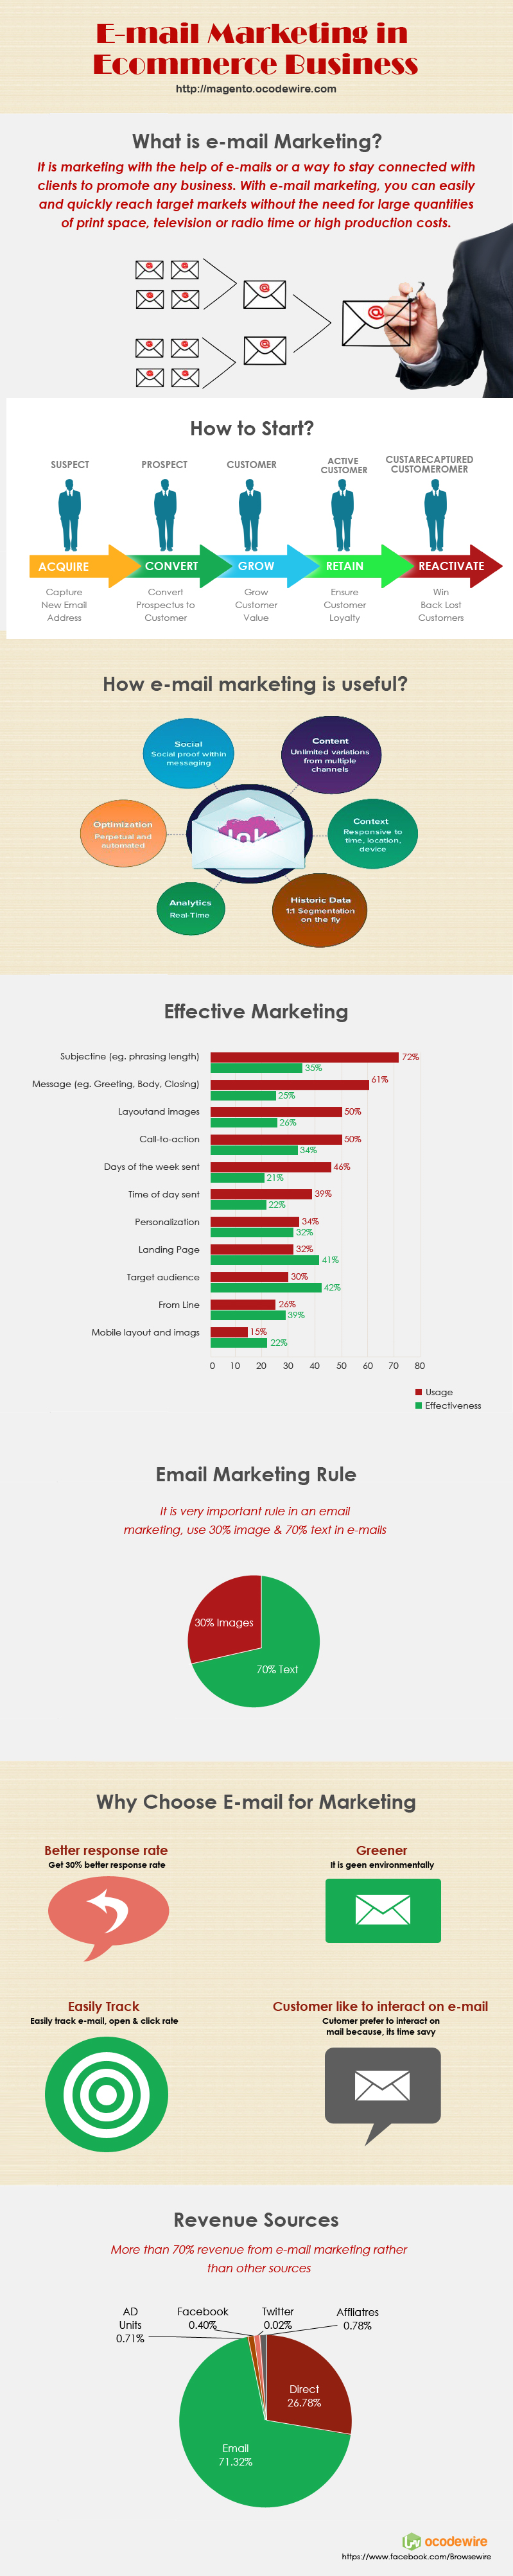 e-mail-marketing-infographic